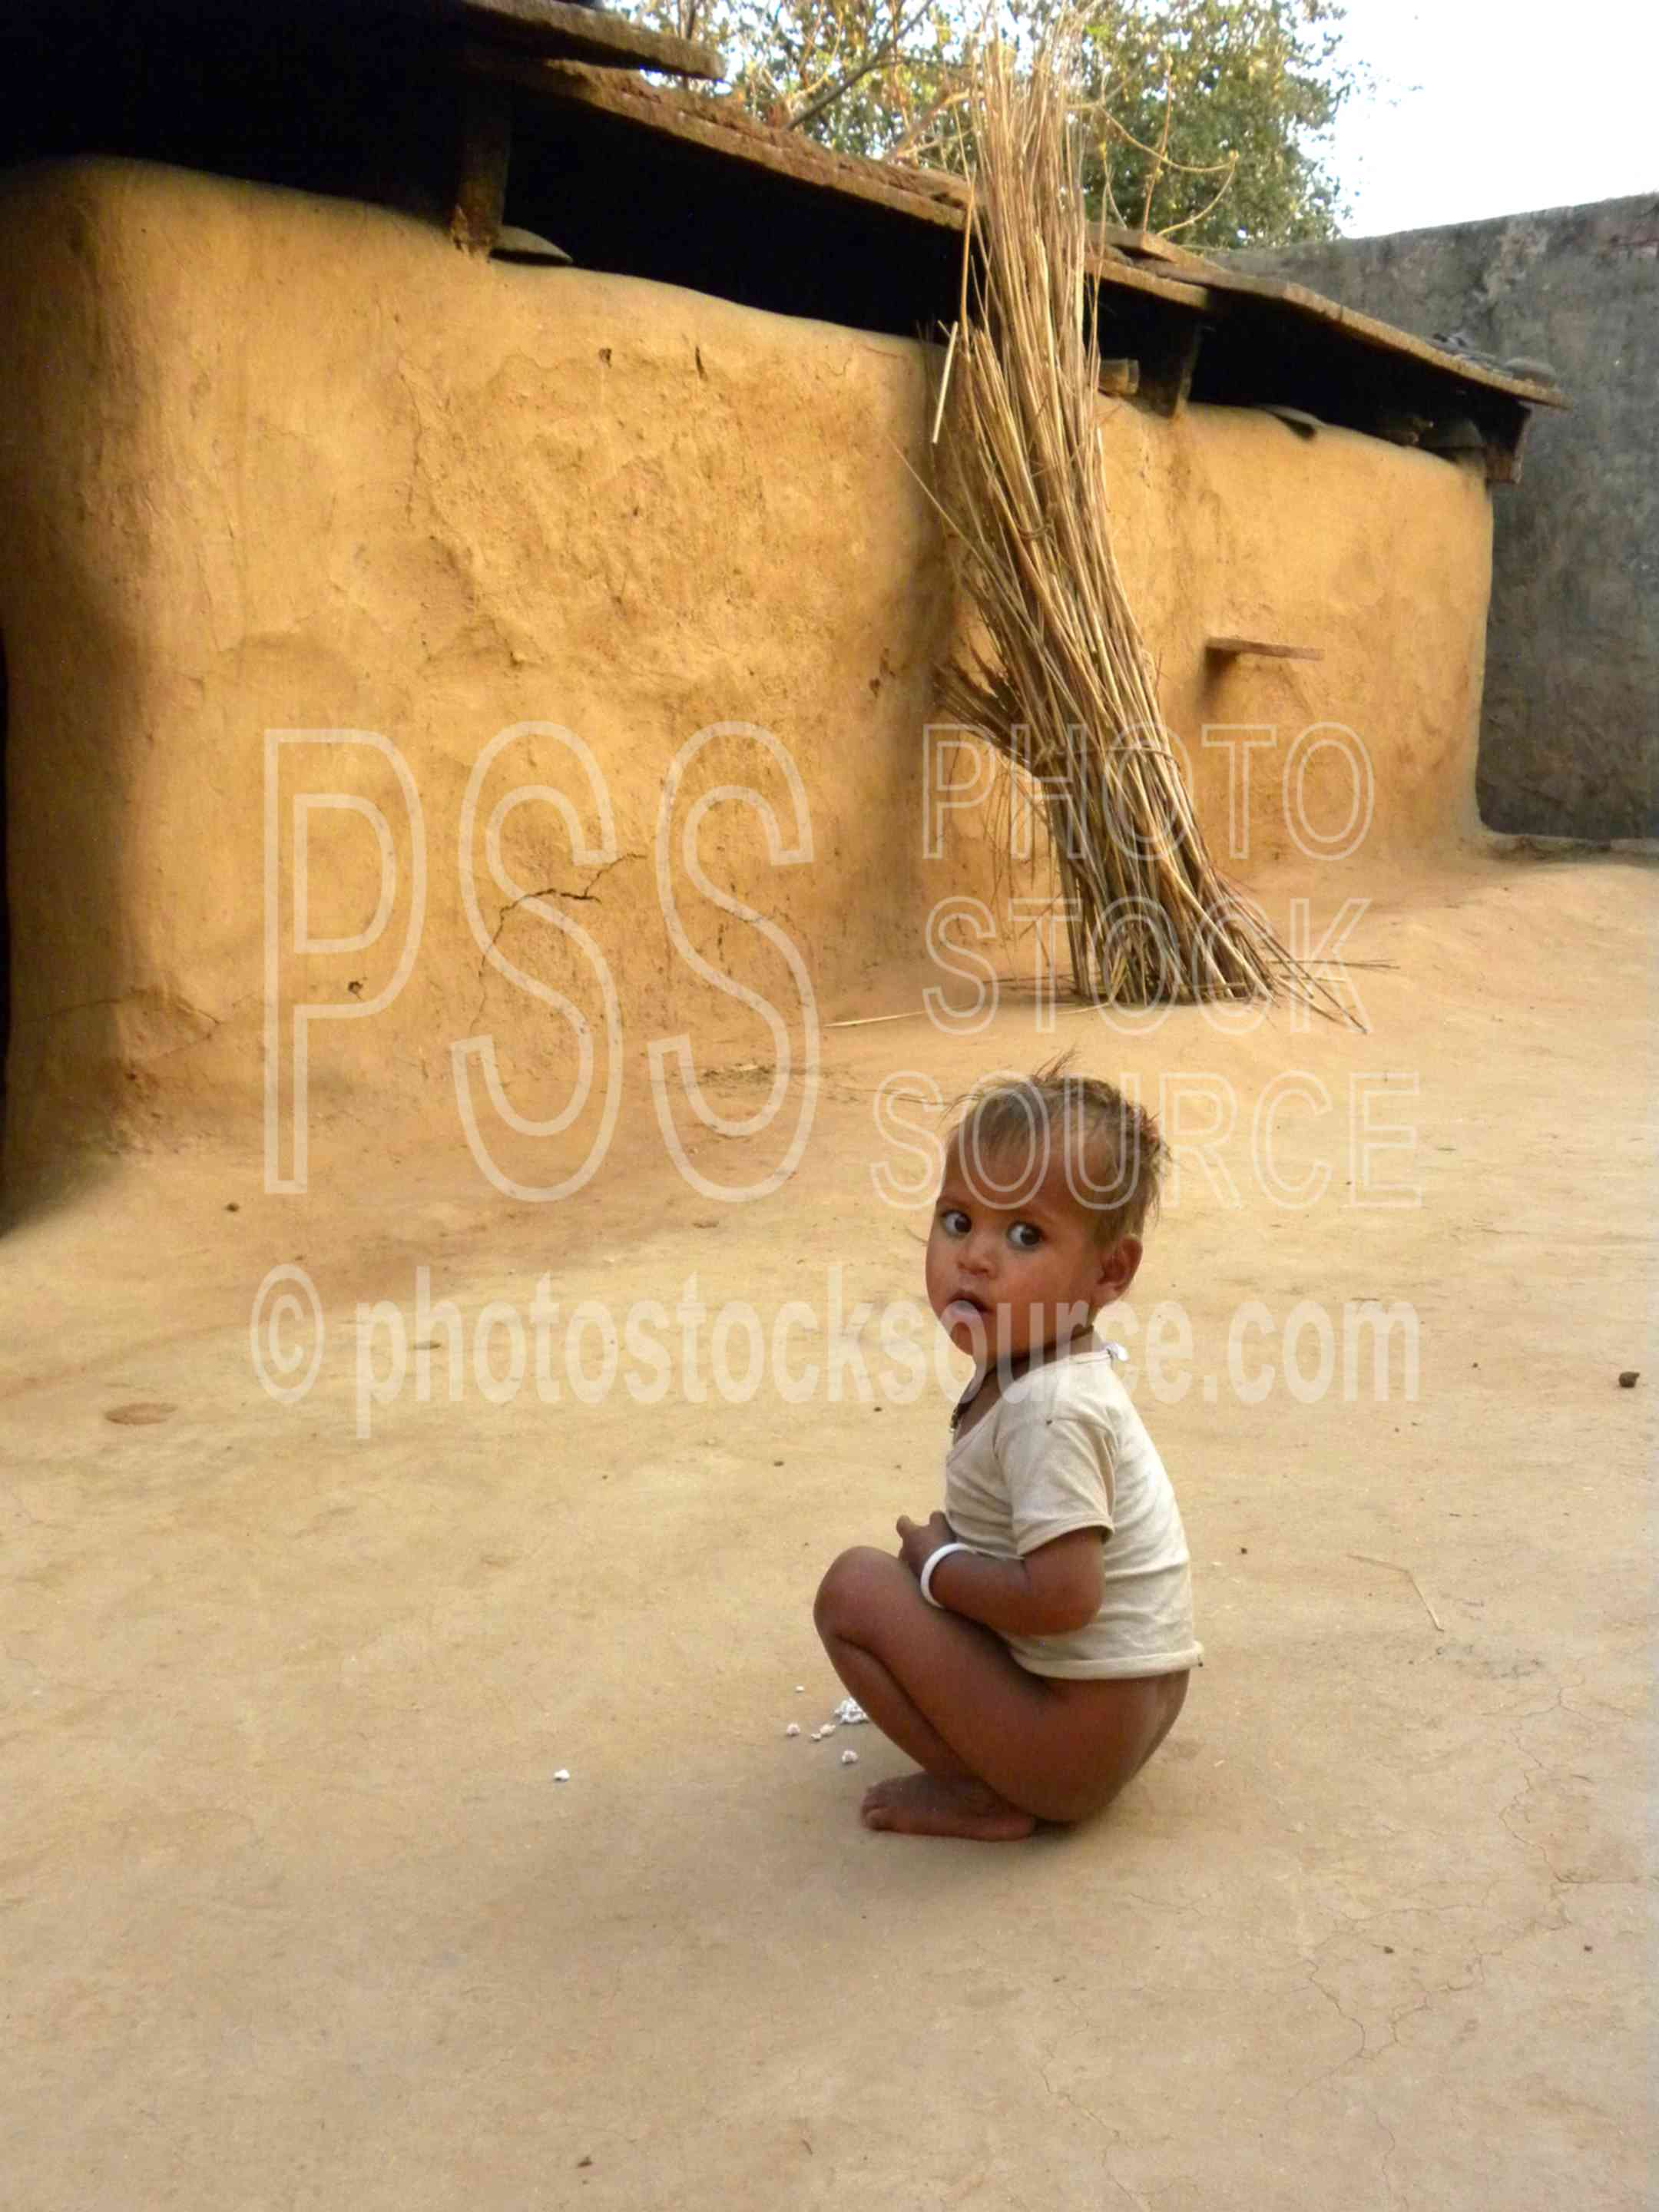 Baby in Courtyard,house,home,courtyard,baby,child